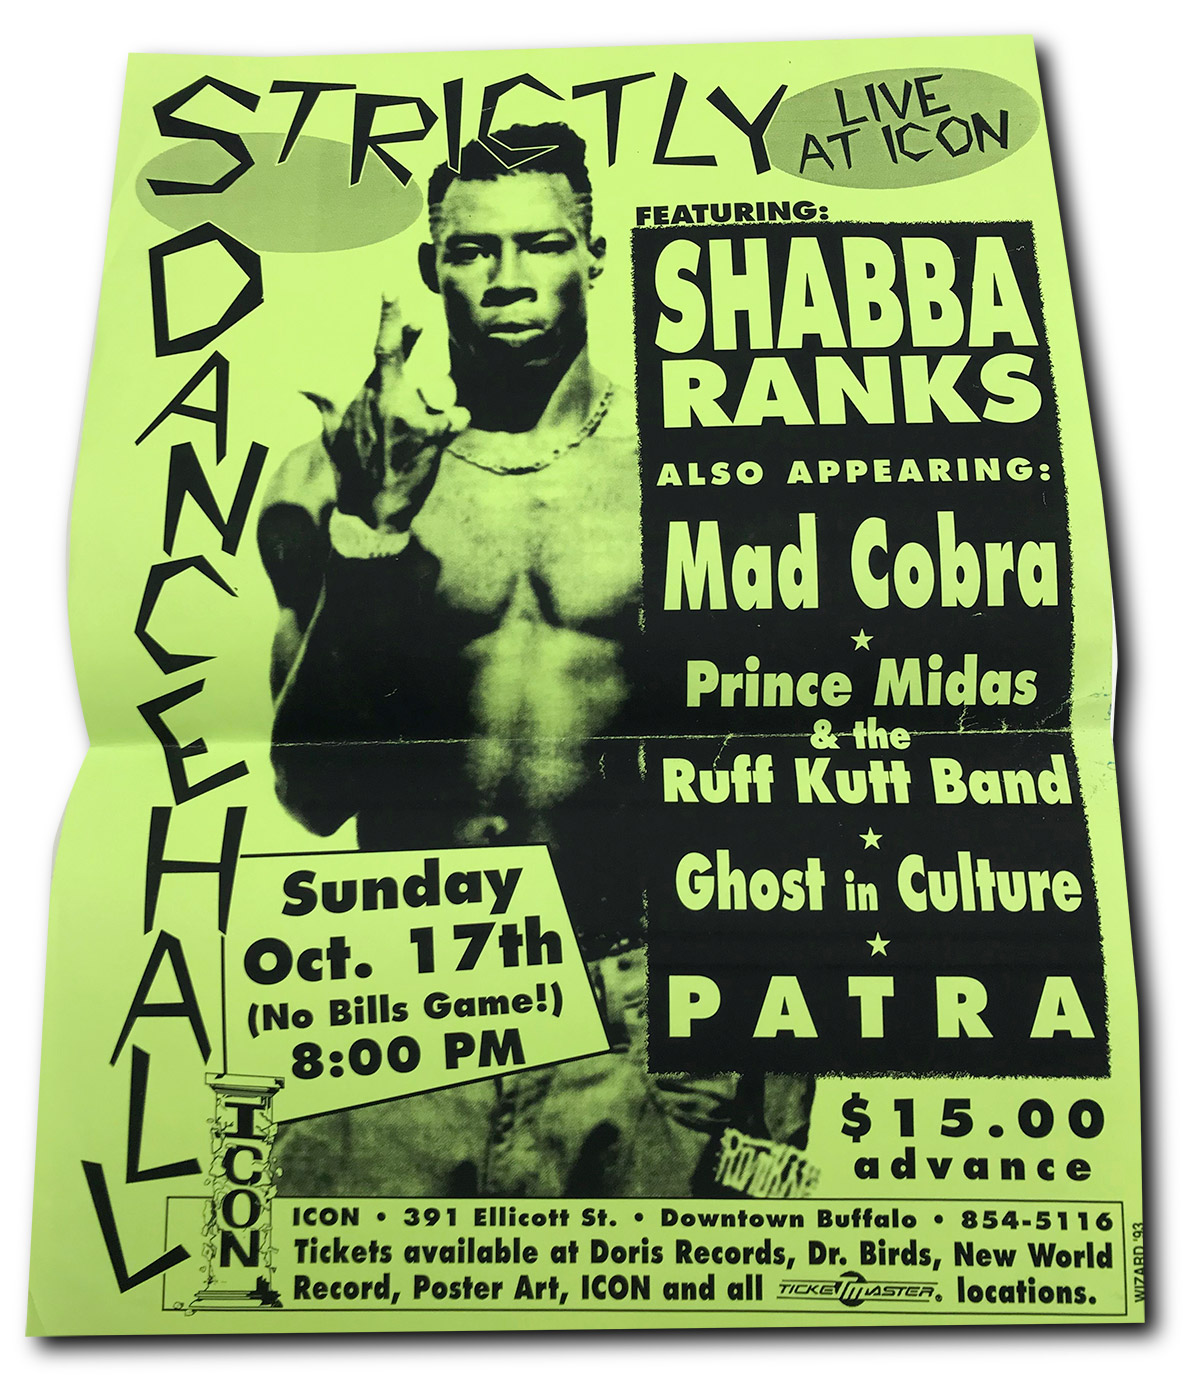 poster design, buffalo, NY, ICON, 1993, Shaba Ranks, part, dancehall